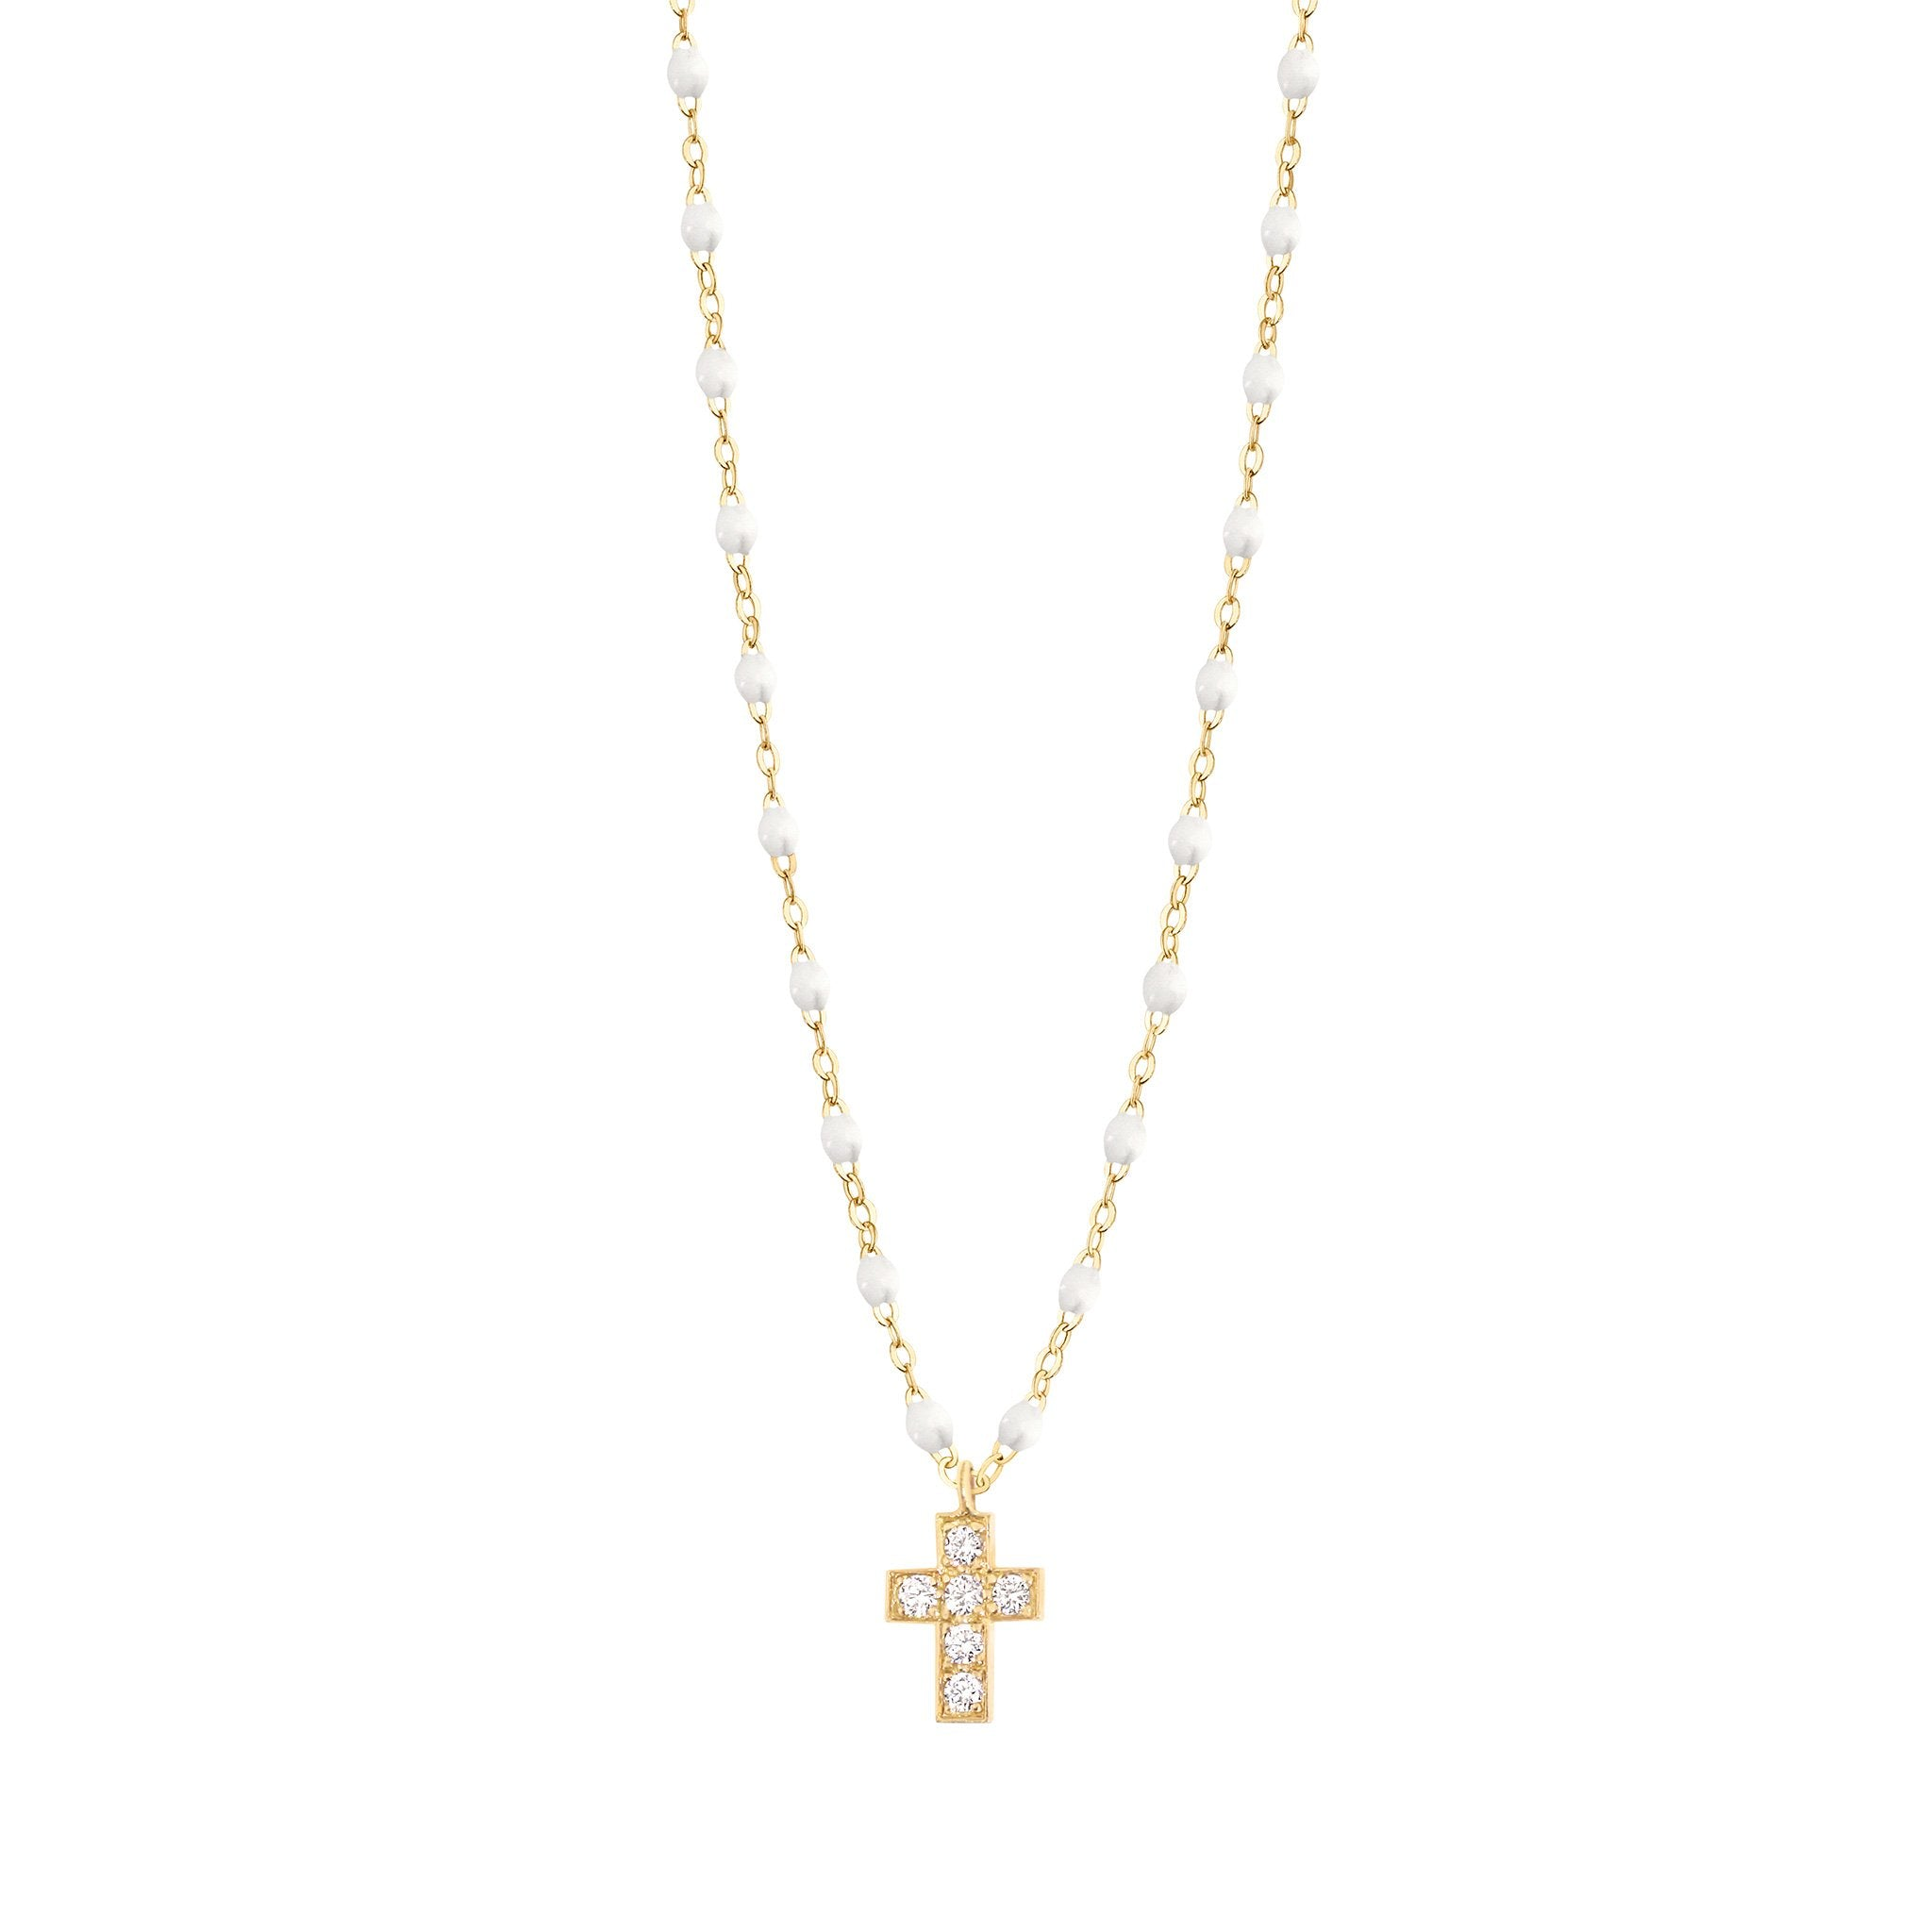 Gigi Clozeau - Collier blanc Croix diamants, or jaune, 42 cm